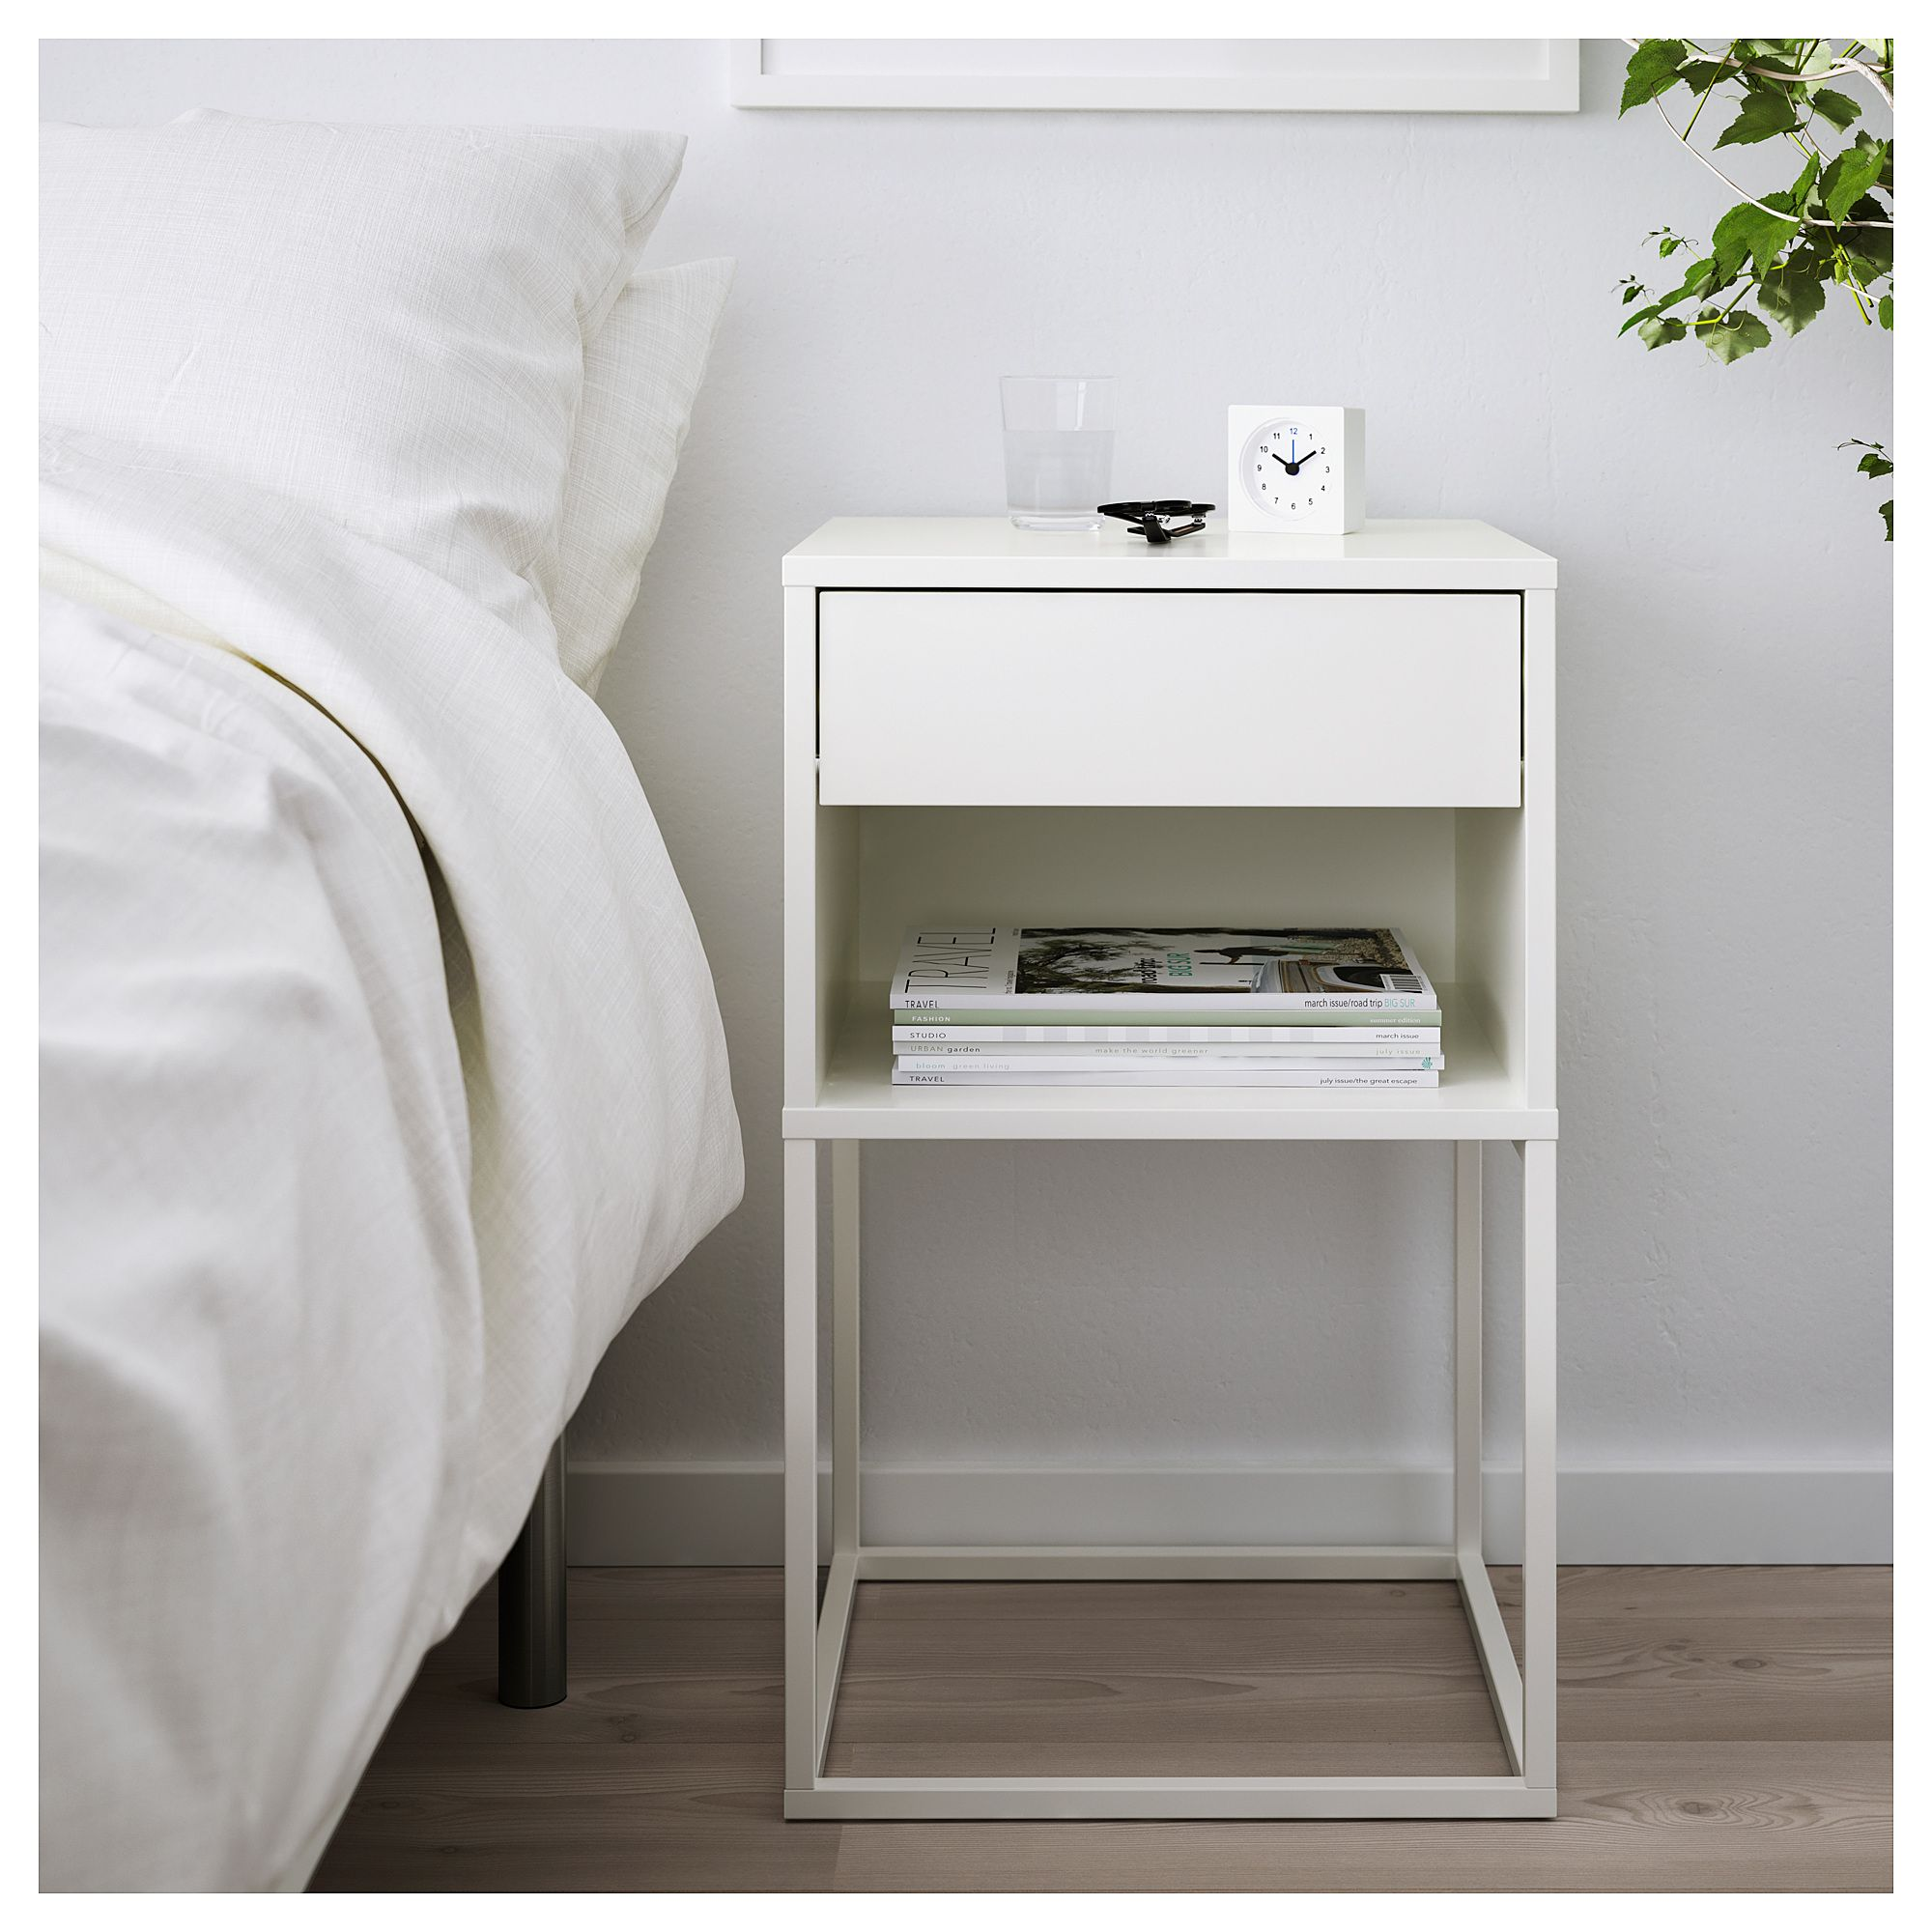 Vikhammer Noshno Shkafche Byalo White Bedside Table White Nightstand Bedroom Night Stands